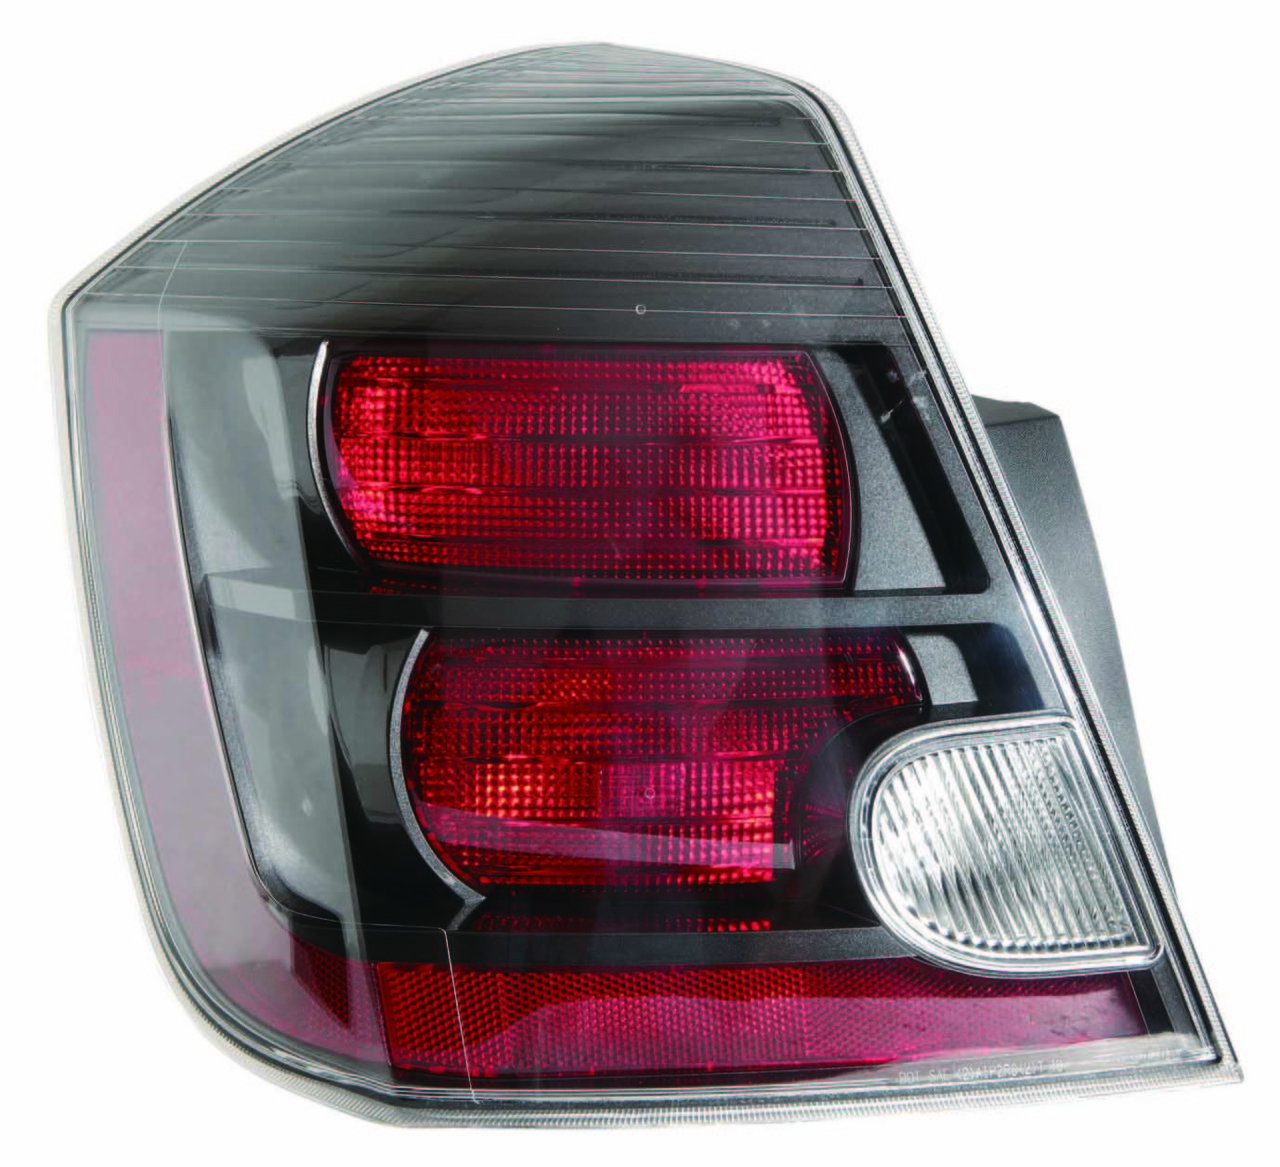 Nissan Sentra 2010 2011 2012 SR / SE-R tail light left driver